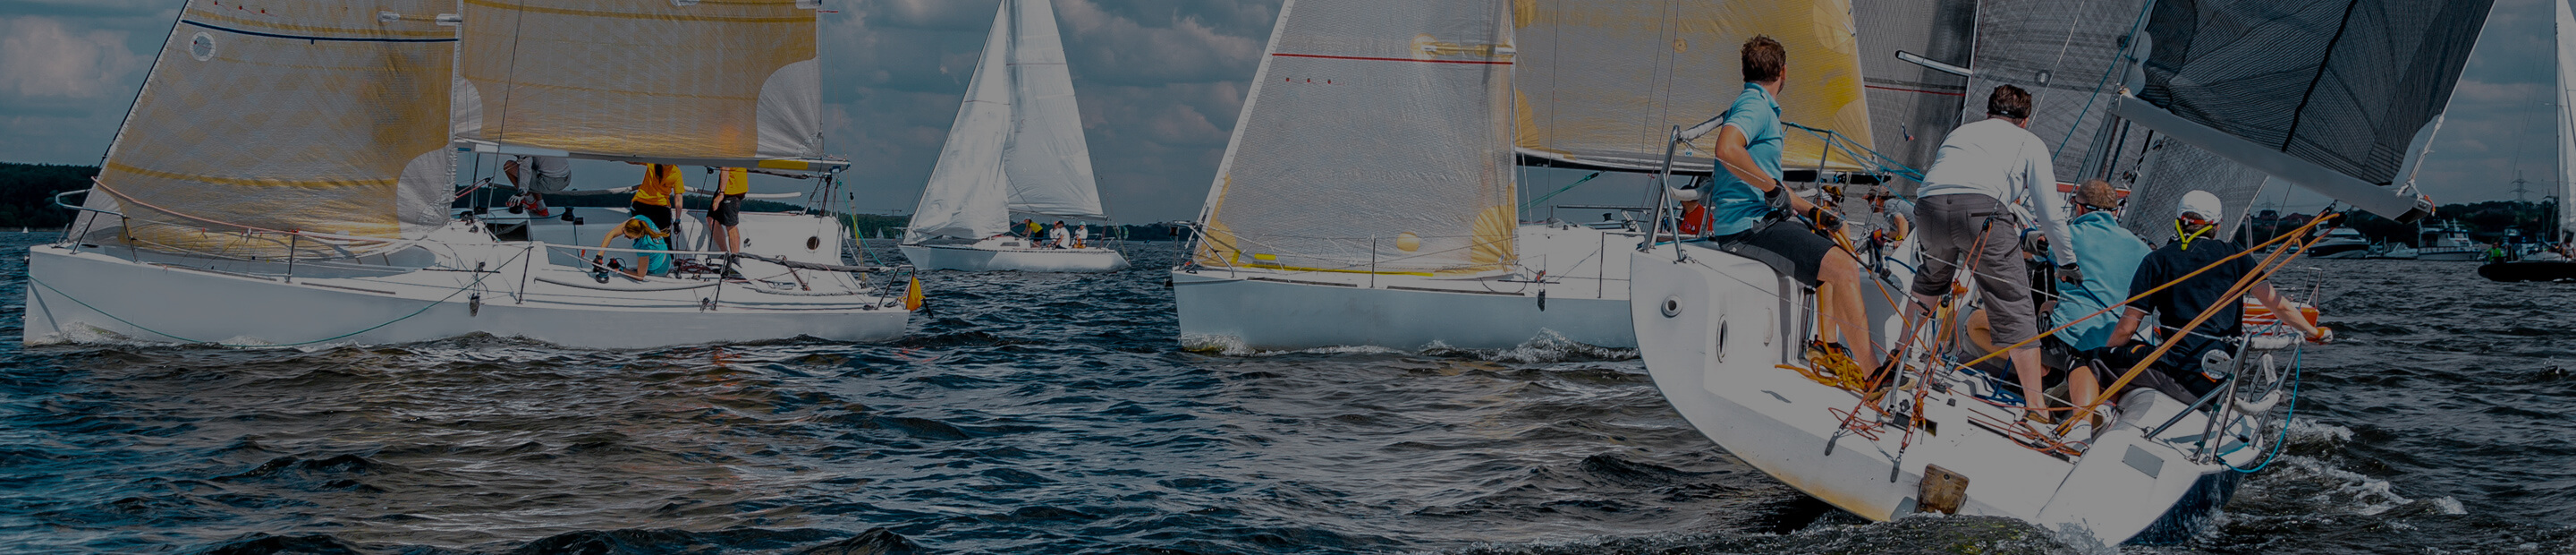 Sailing regattas in Spain